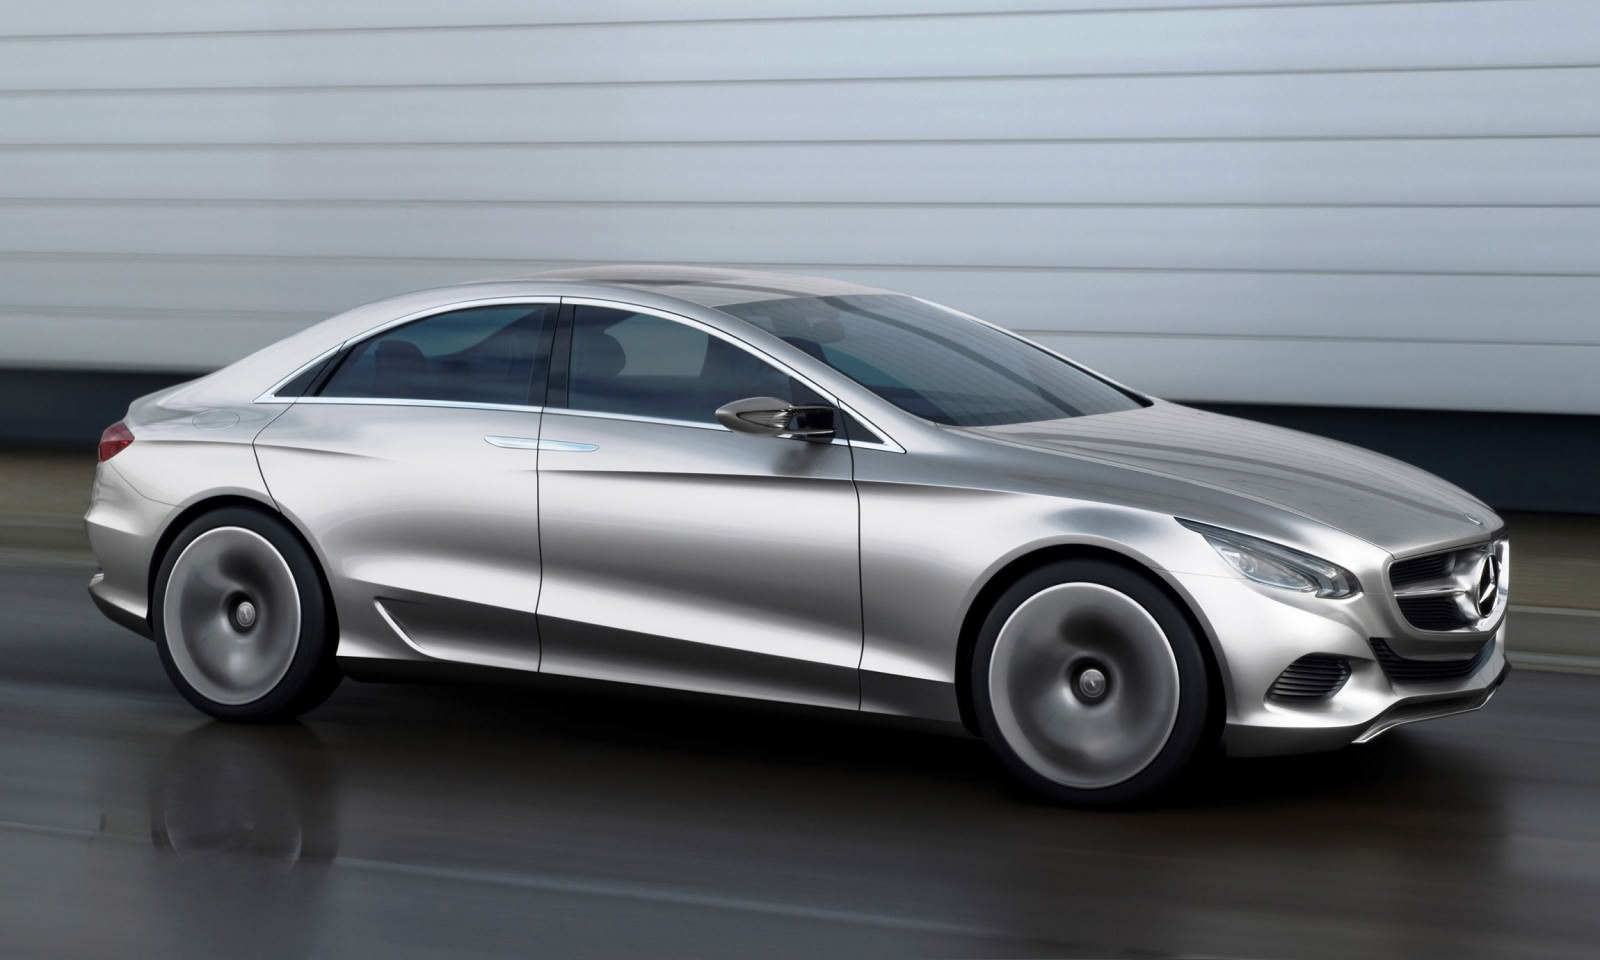 Ws 2012 mercedes benz concept style coupe studio 1920x1200 for Mercedes benz f800